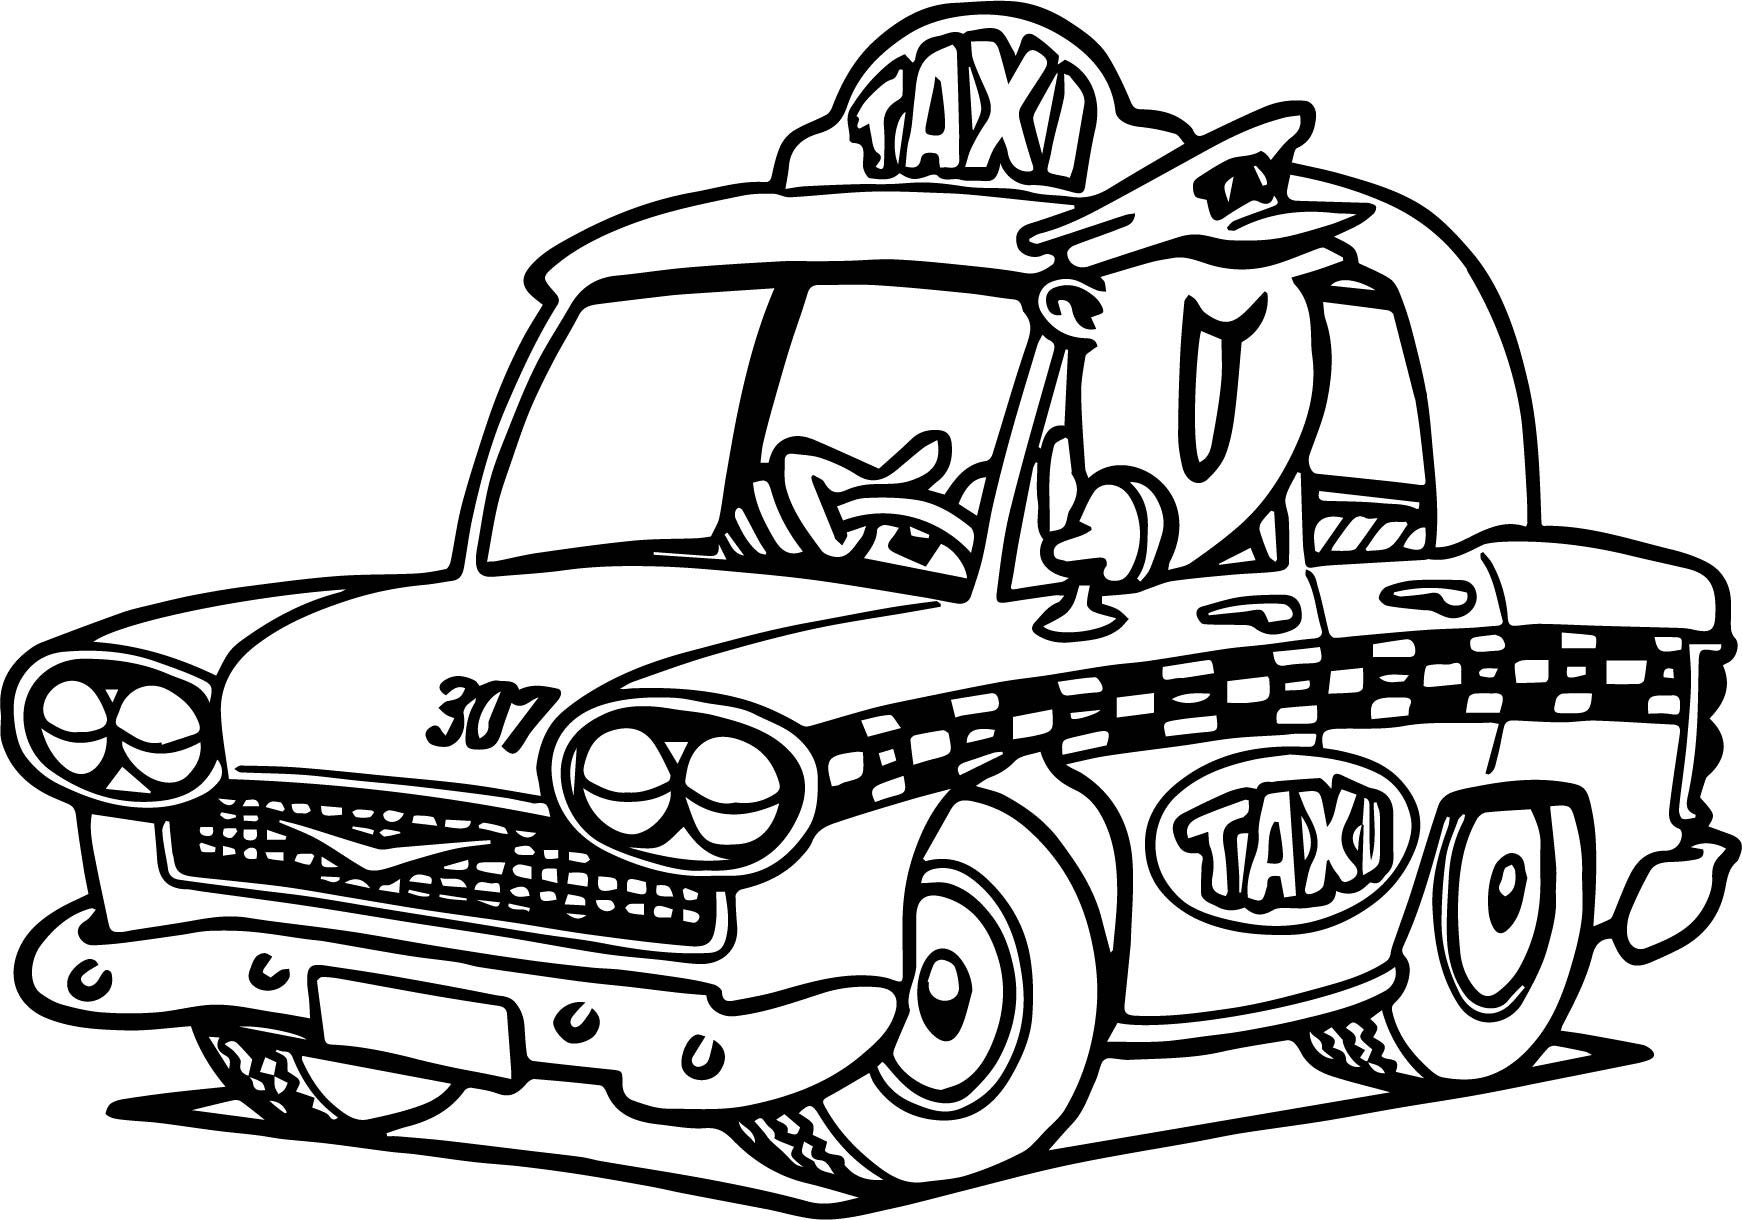 Taxi coloring pages to download